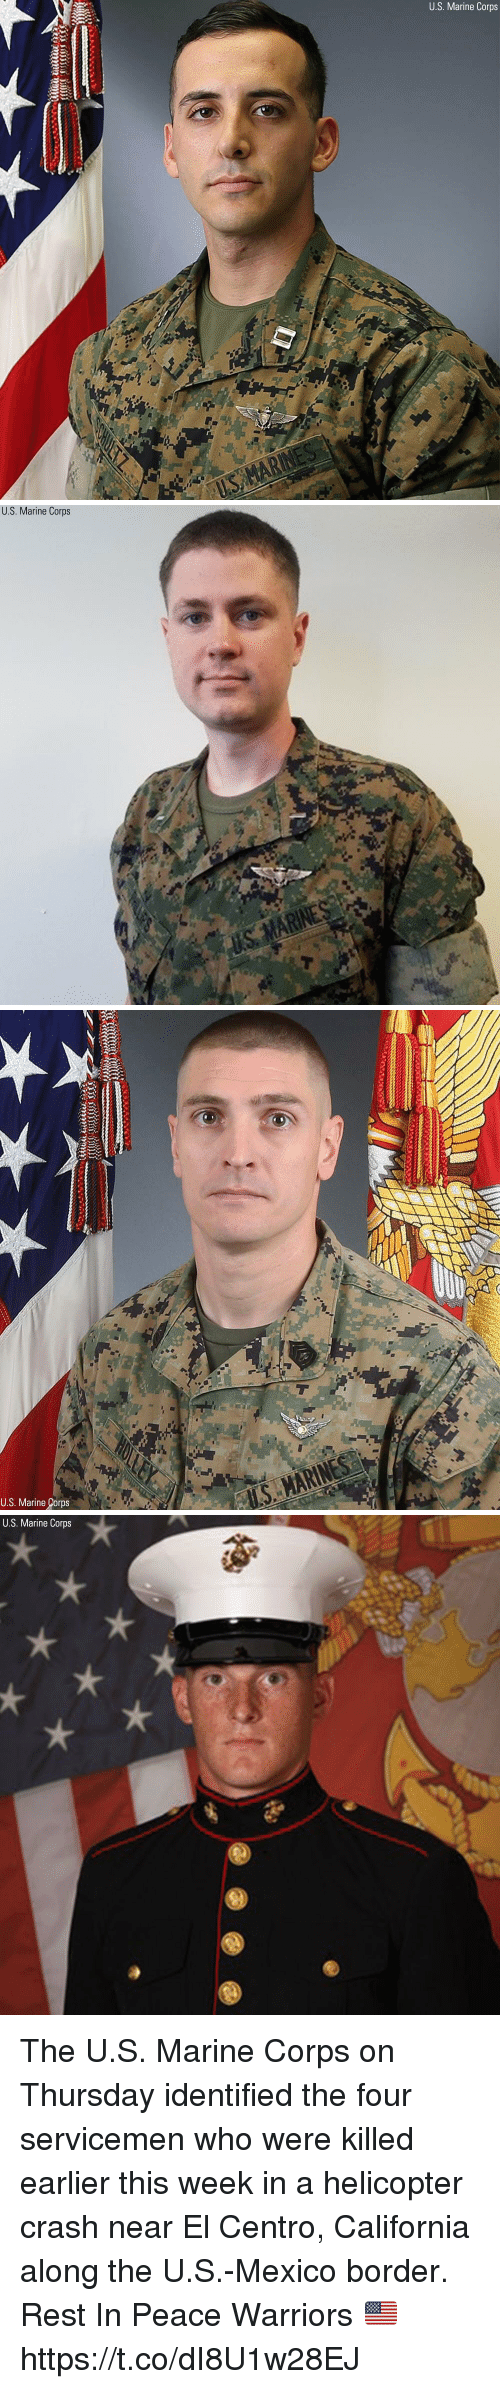 Memes, California, and Mexico: U.S. Marine Corps   U.S. Marine Corps   U.S. Marine Corps   U.S. Marine Corps The U.S. Marine Corps on Thursday identified the four servicemen who were killed earlier this week in a helicopter crash near El Centro, California along the U.S.-Mexico border. Rest In Peace Warriors 🇺🇸 https://t.co/dI8U1w28EJ